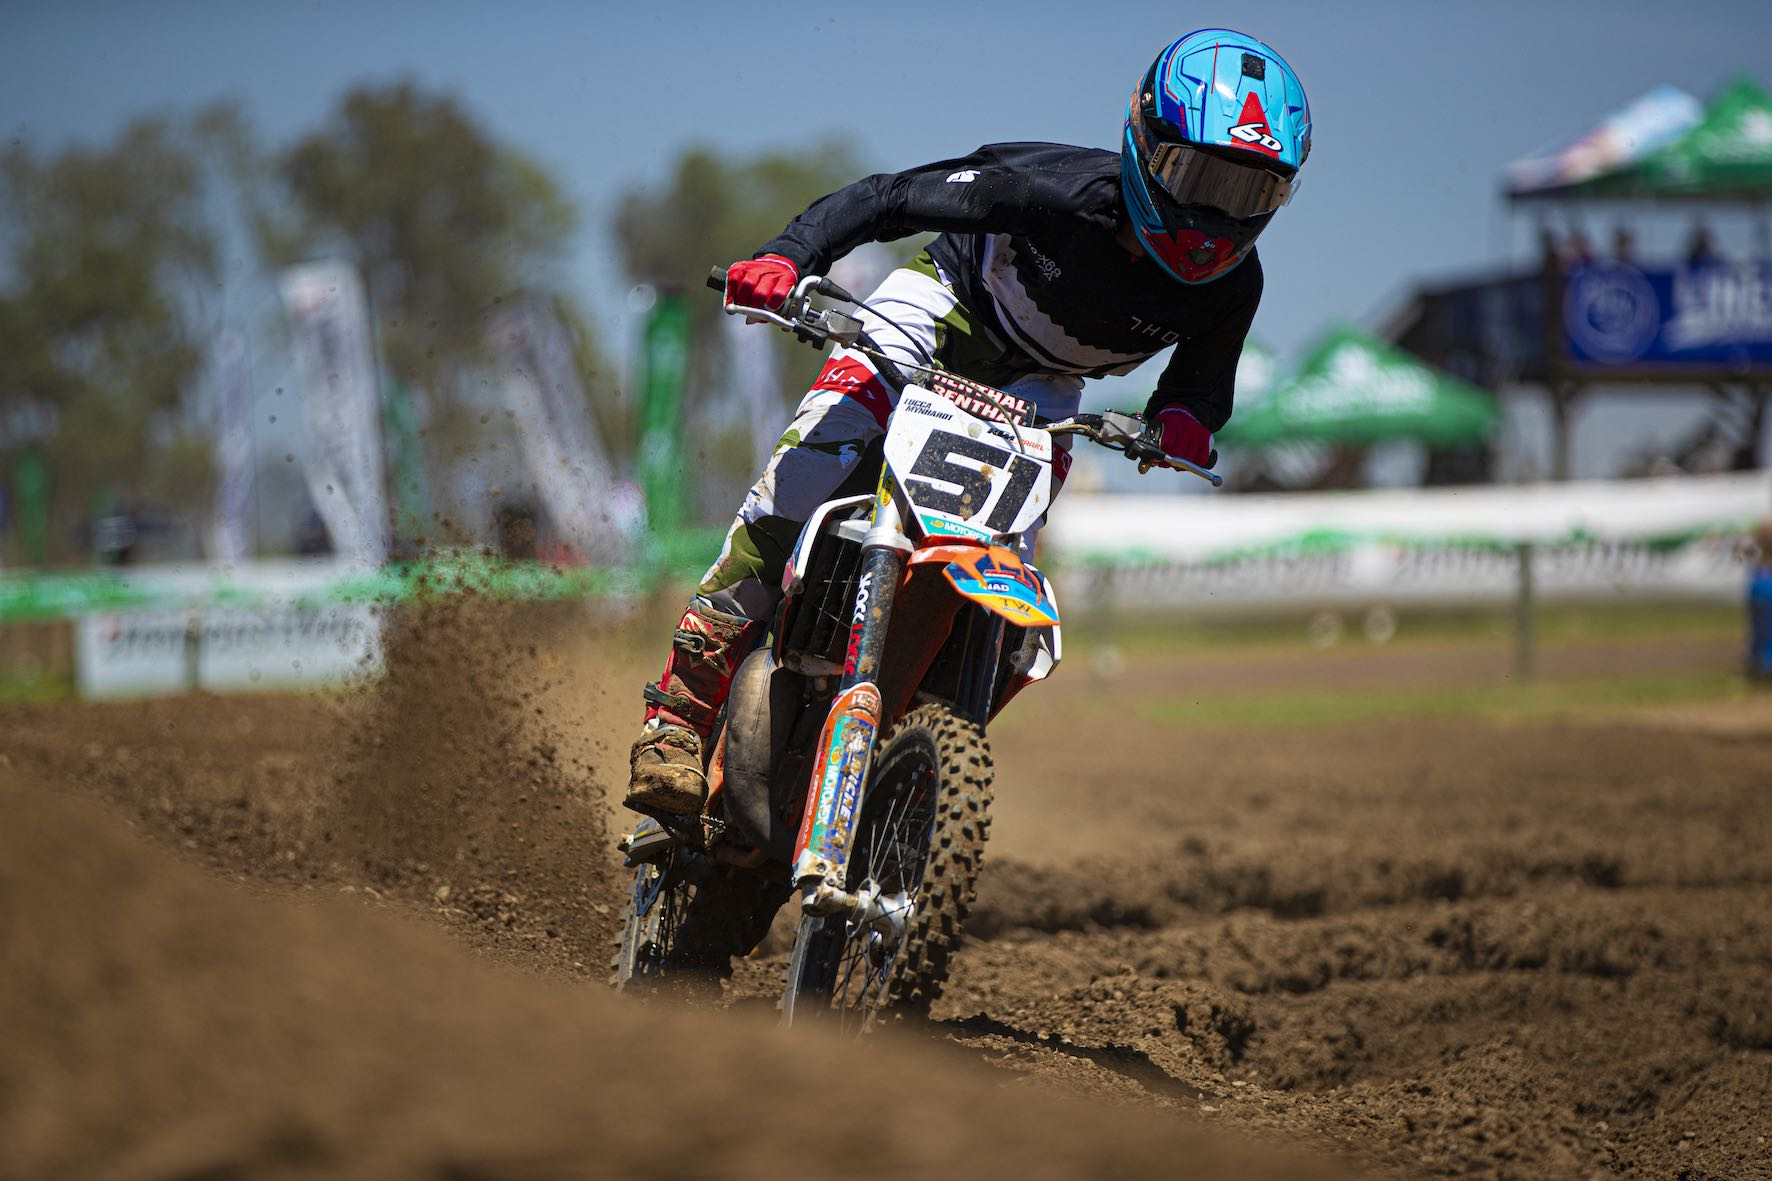 Lucca Mynhardt winning the 85cc Pro Mini class at Round 1 of the 2021 SA Motocross Nationals